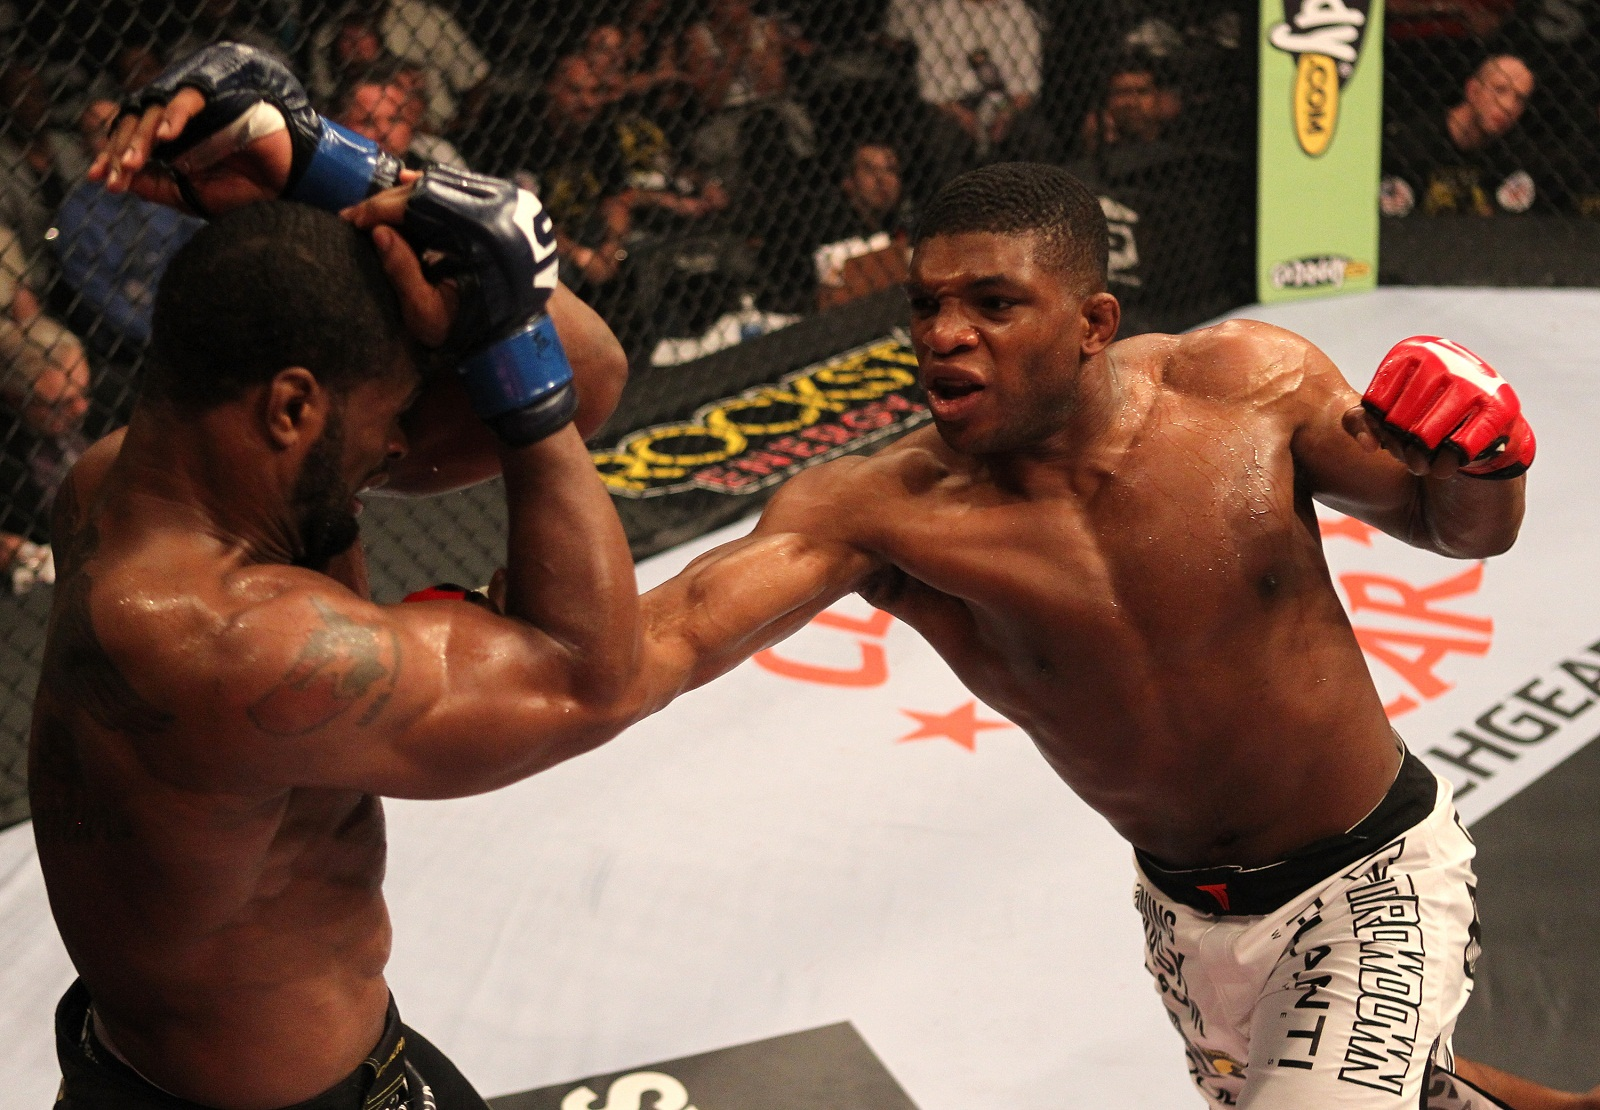 Strikeforce welterweight Paul Daley